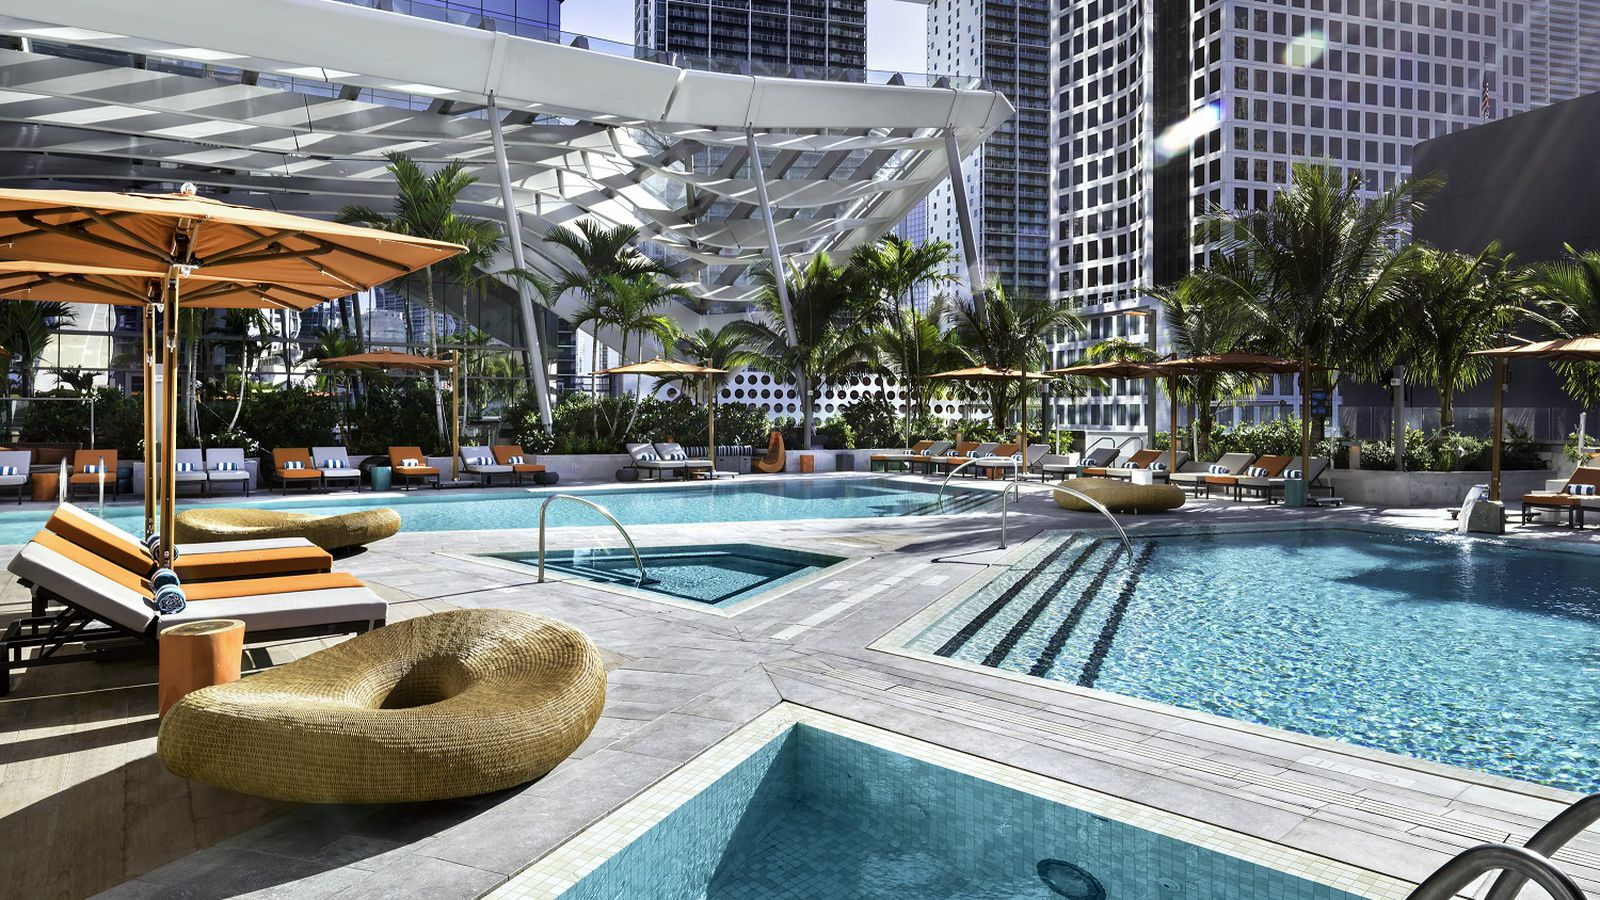 Miami 39 s 11 ultimate hotel pools summer 2017 curbed miami - Hotels near me with a swimming pool ...